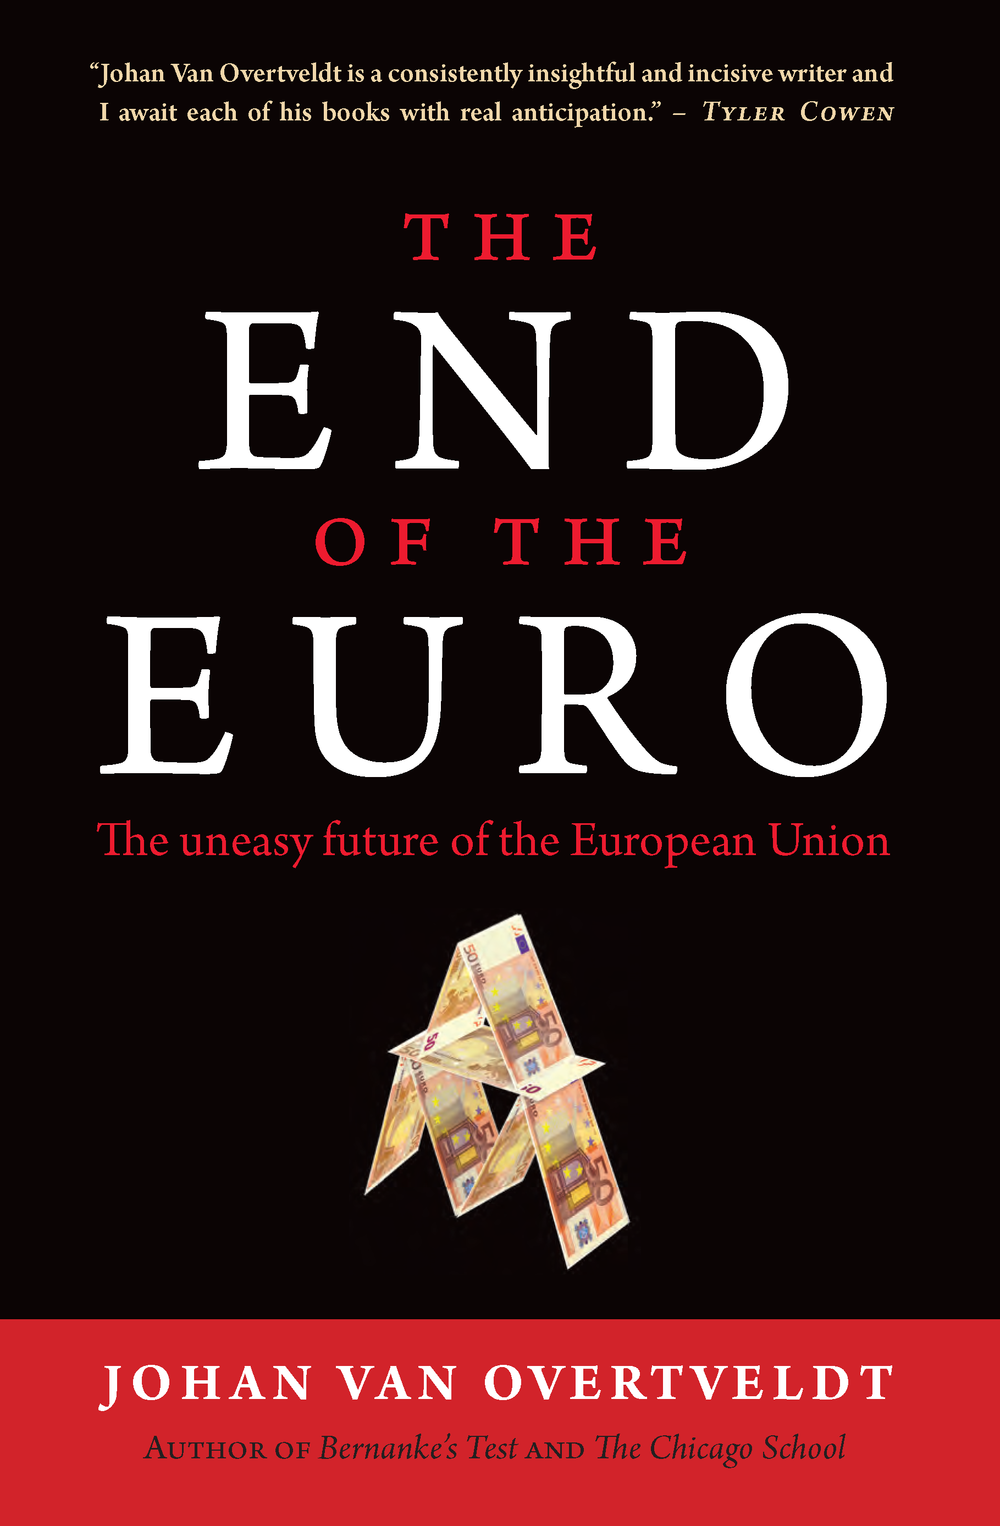 End of the Euro_Page_01.png